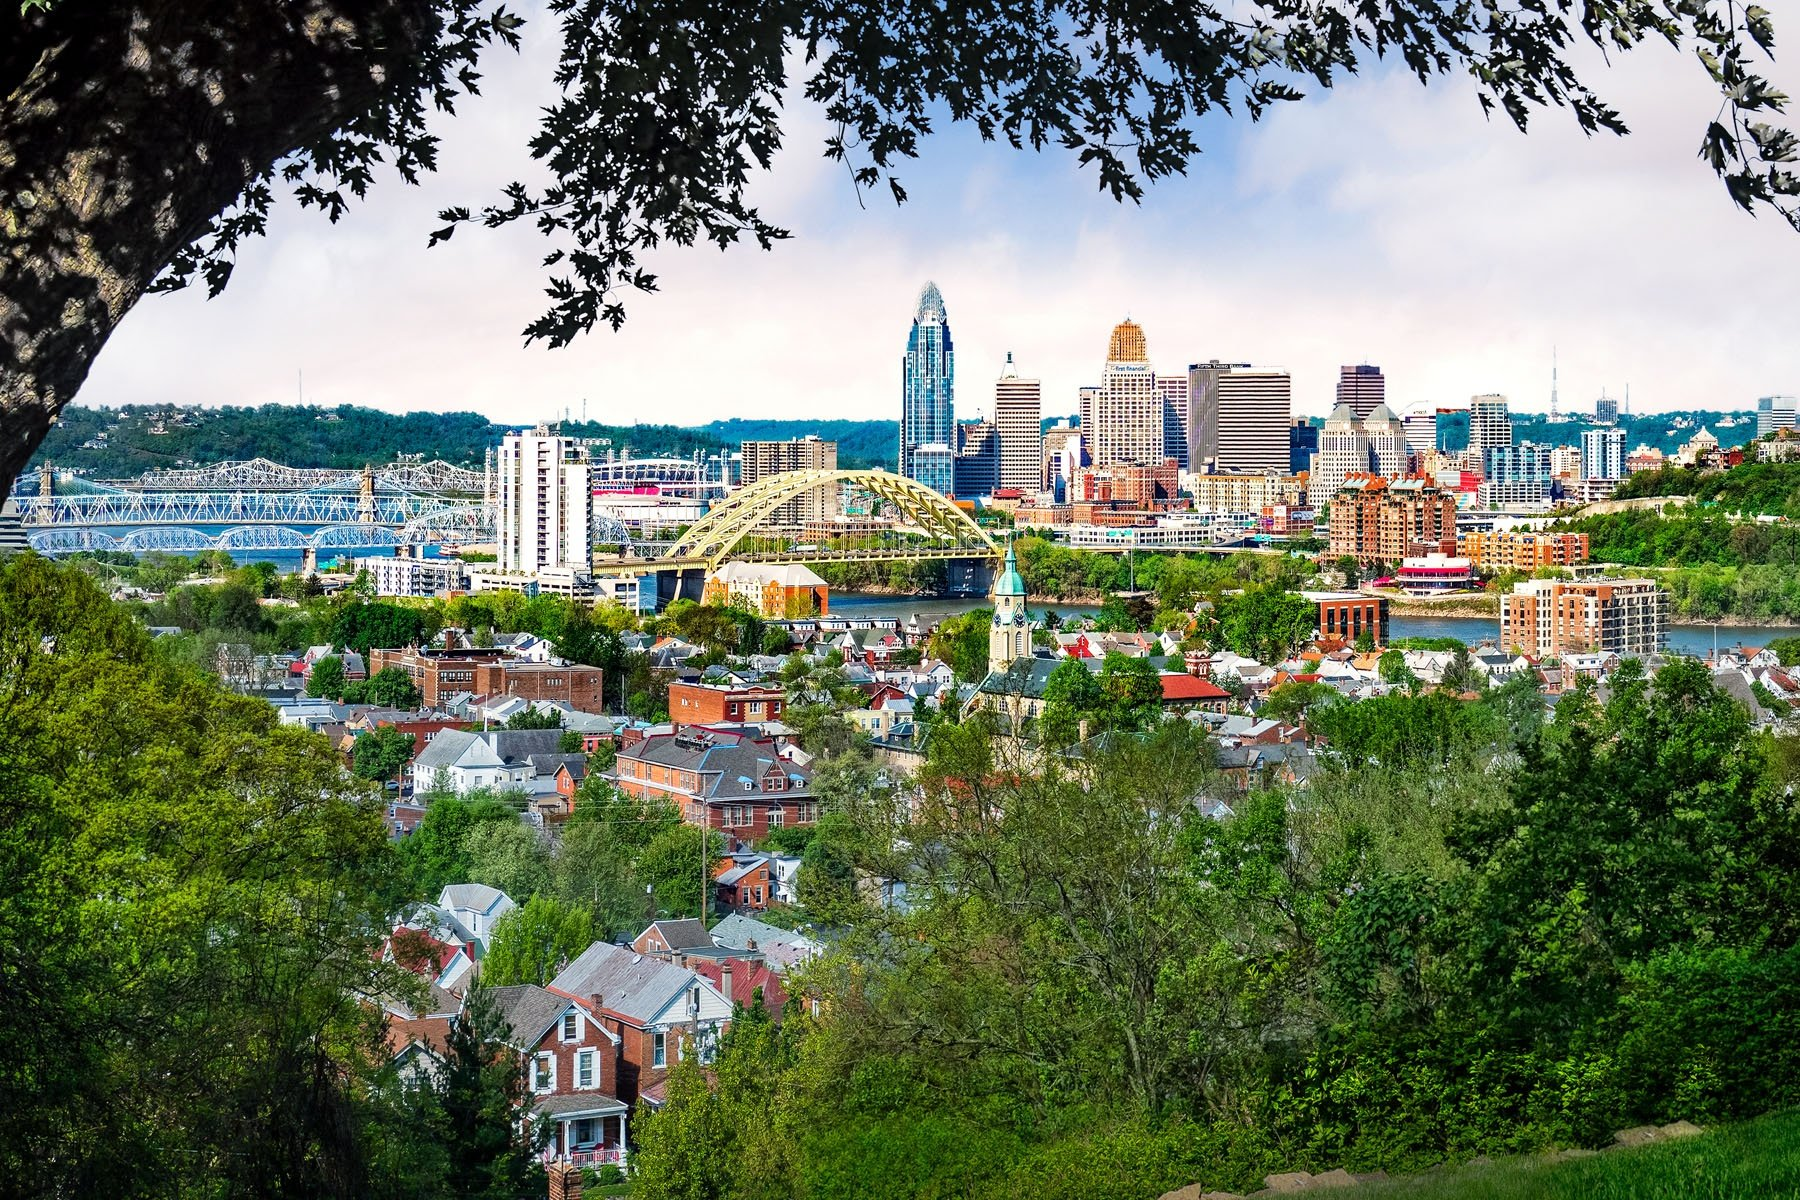 BRIDGES - This Cincinnati skyline view from the hills above Newport shows the many bridges crossing the Ohio River that help make the strong tie that Cincinnati has with northern Kentucky.